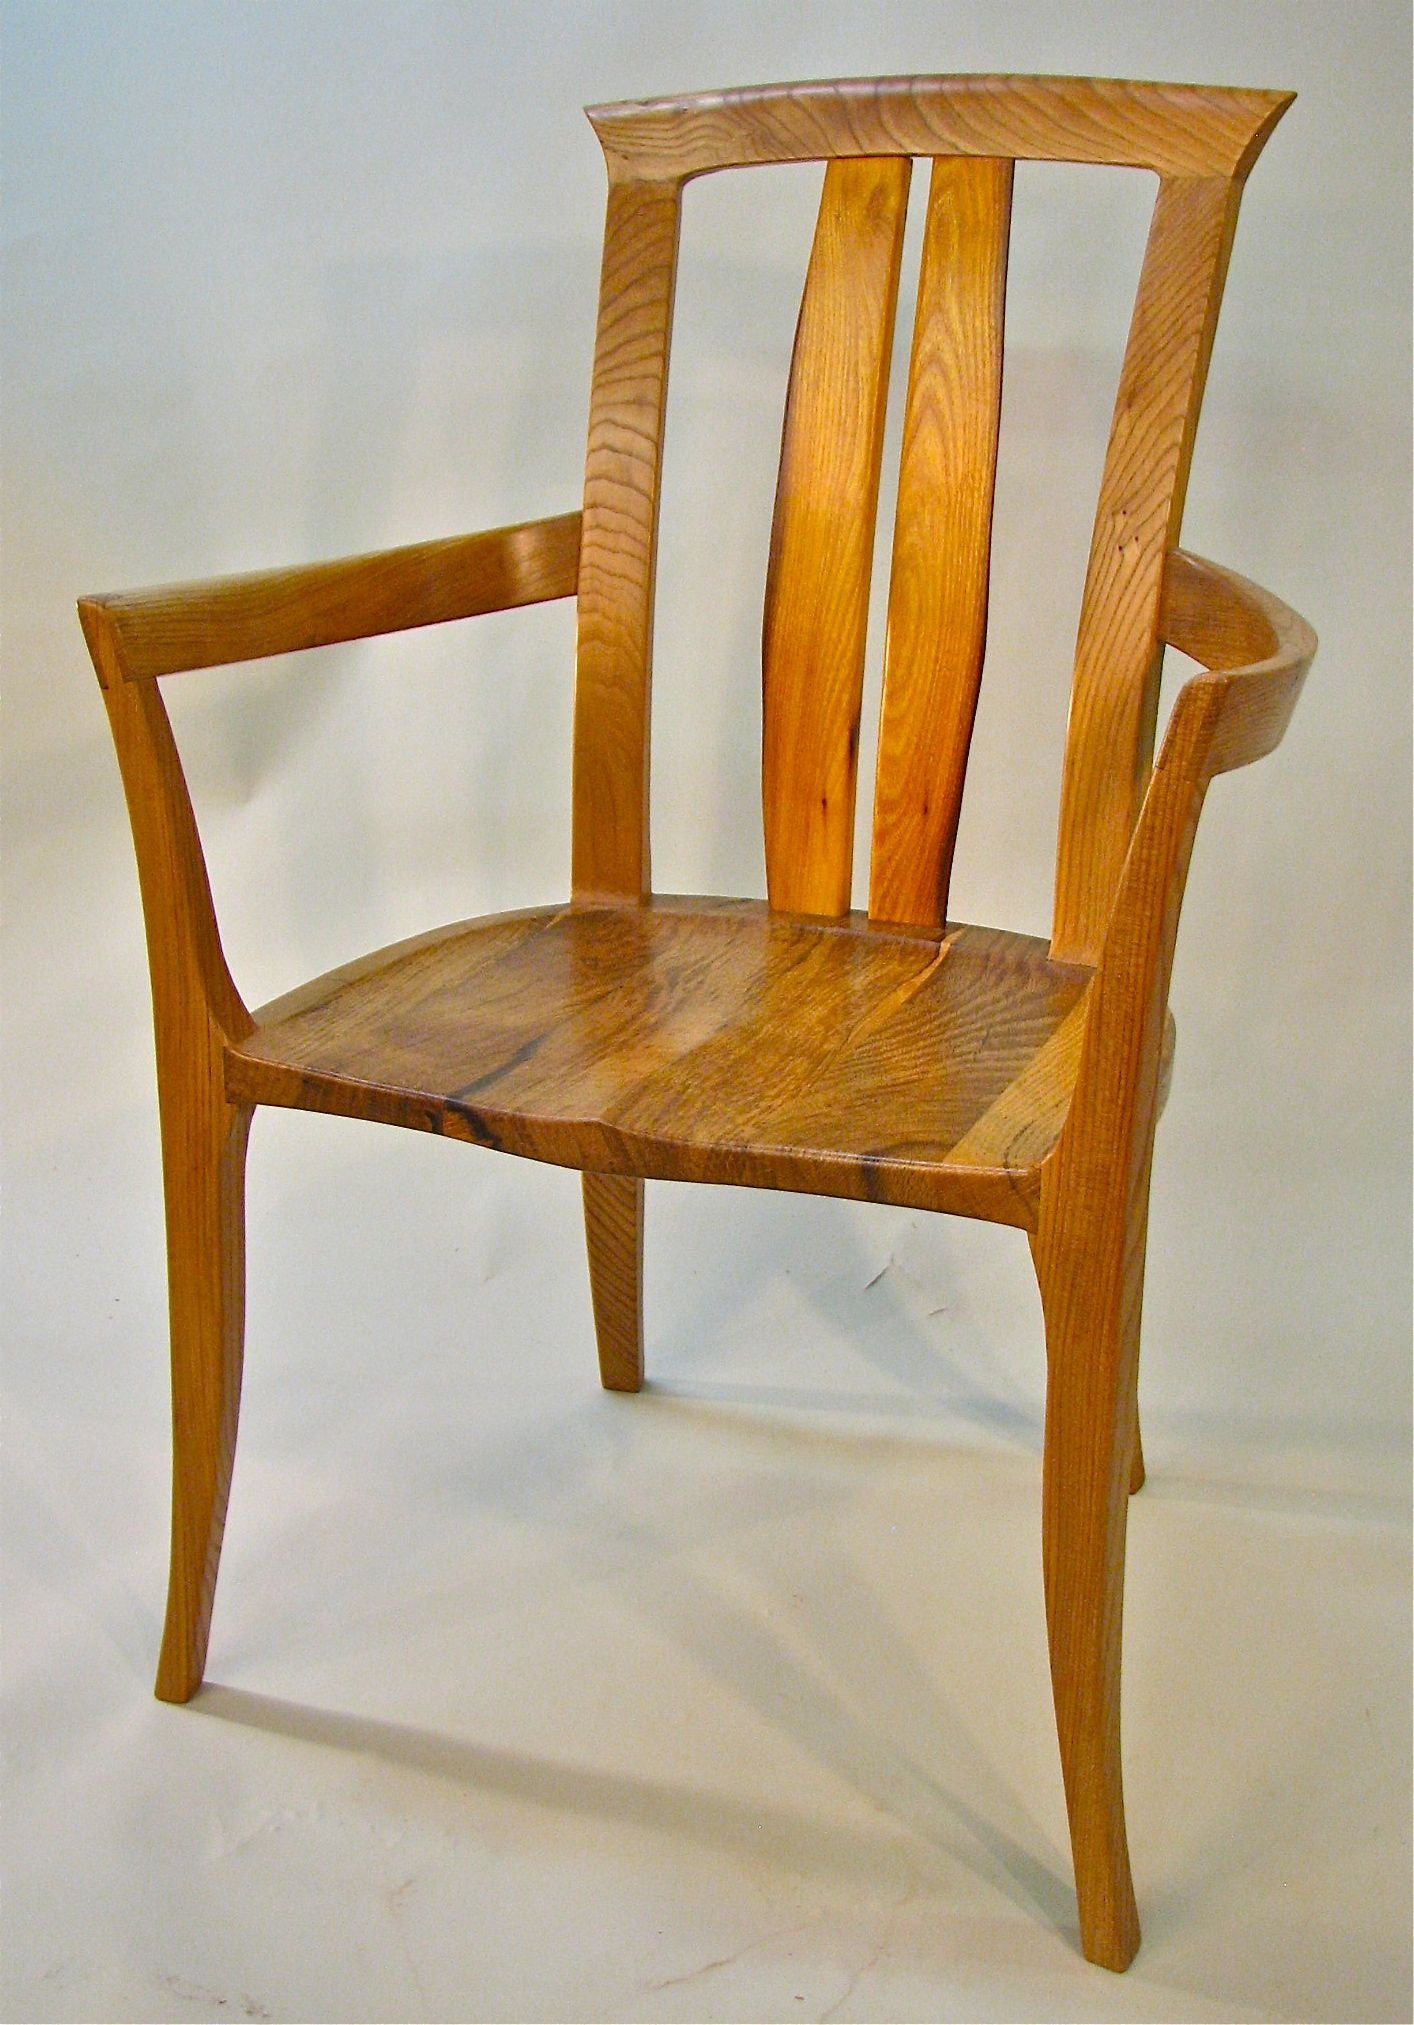 The barrel Chair Made from Elm Valley Oak and back splats of